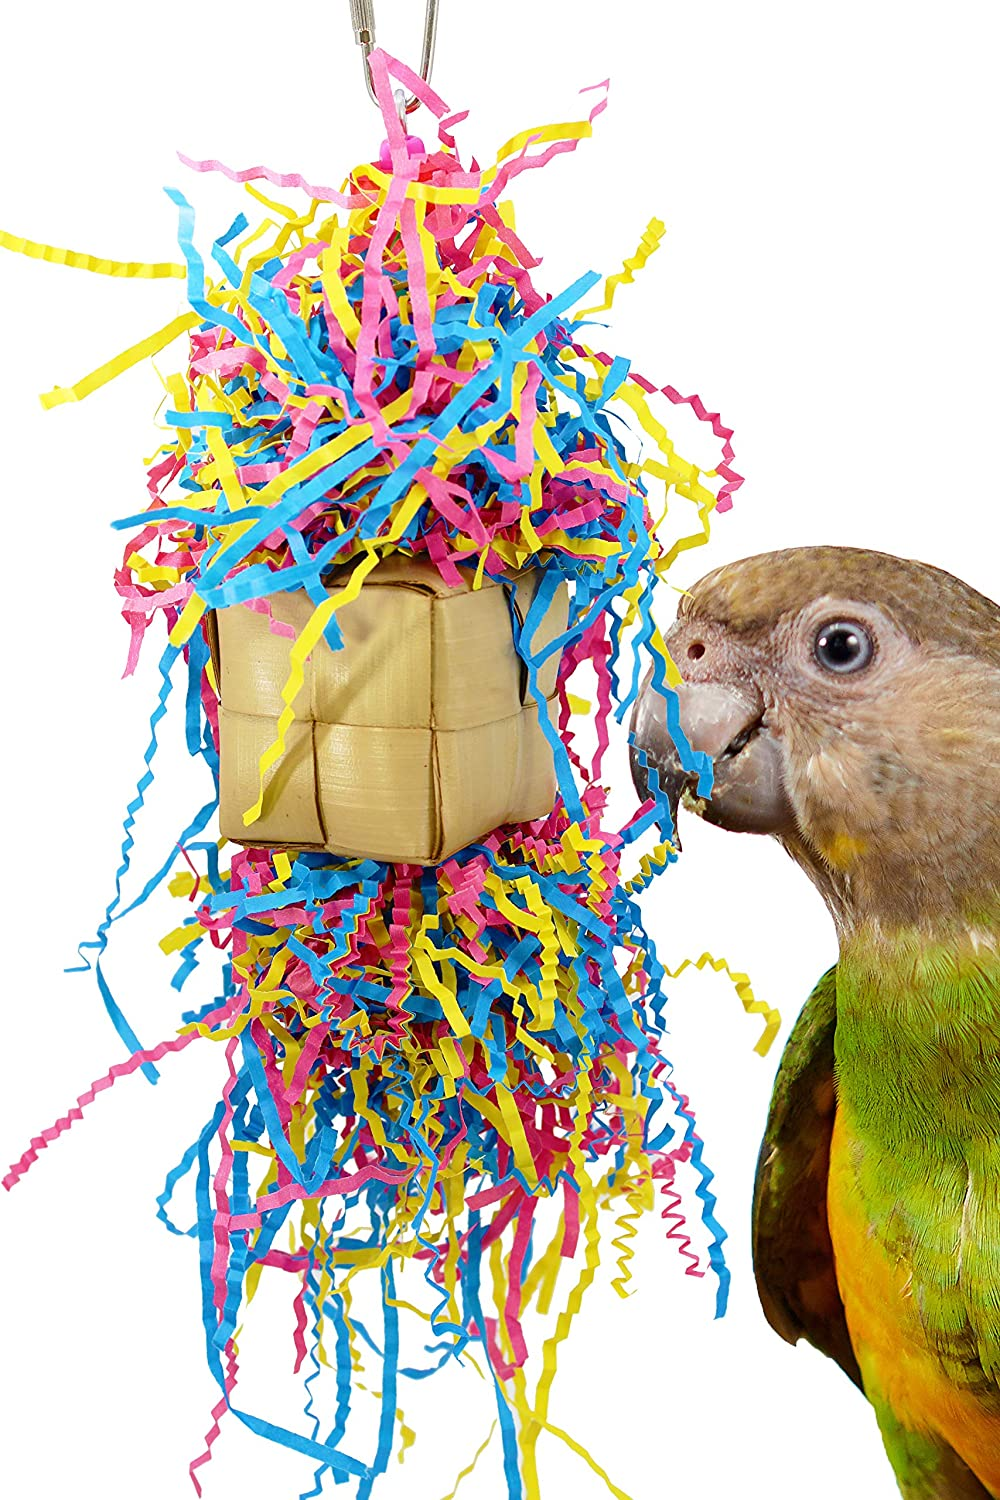 Bonka Bird Toys Space Fingers Octi Planet Mardi Foraging Toy Chew Shredder  Conure Parakeet Cockatiel Budgies Cage Cages